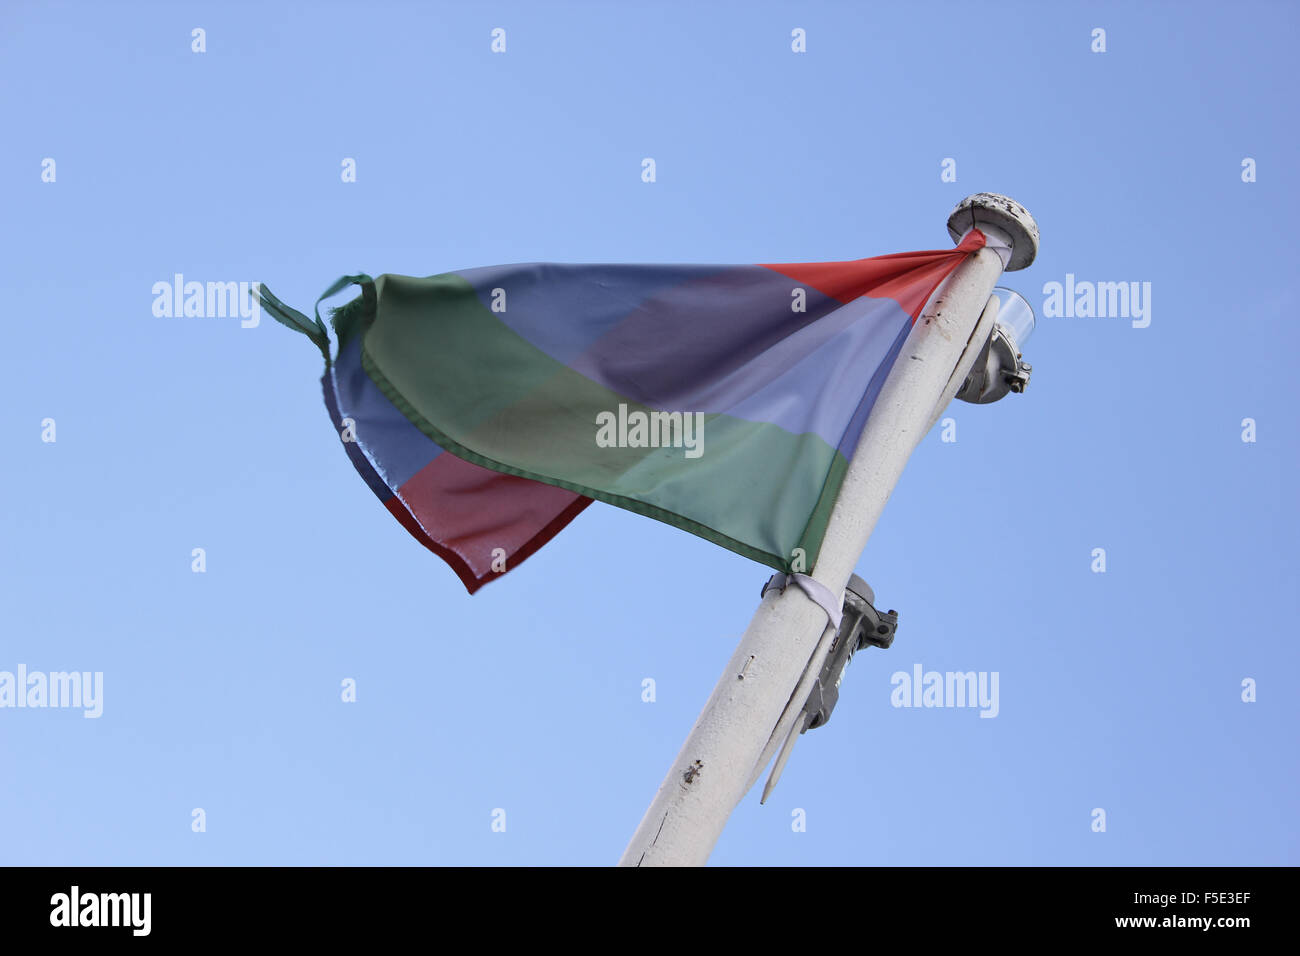 Flag in the wind against the sky - Stock Image